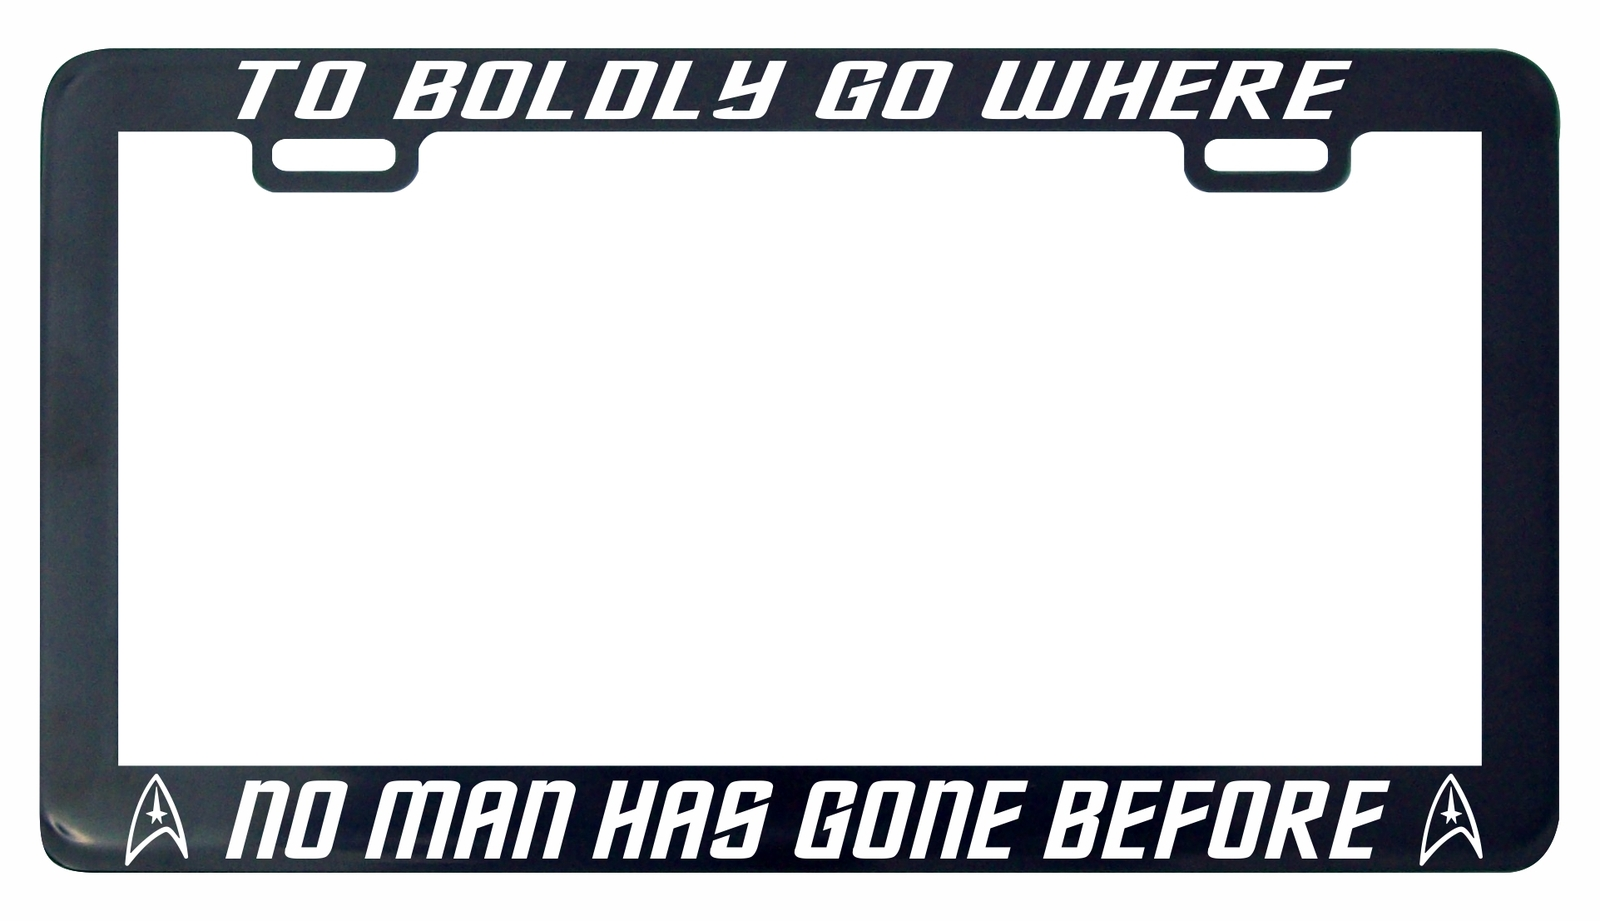 Primary image for Trek Trekkie To boldly go where no man has gone before license plate frame tag